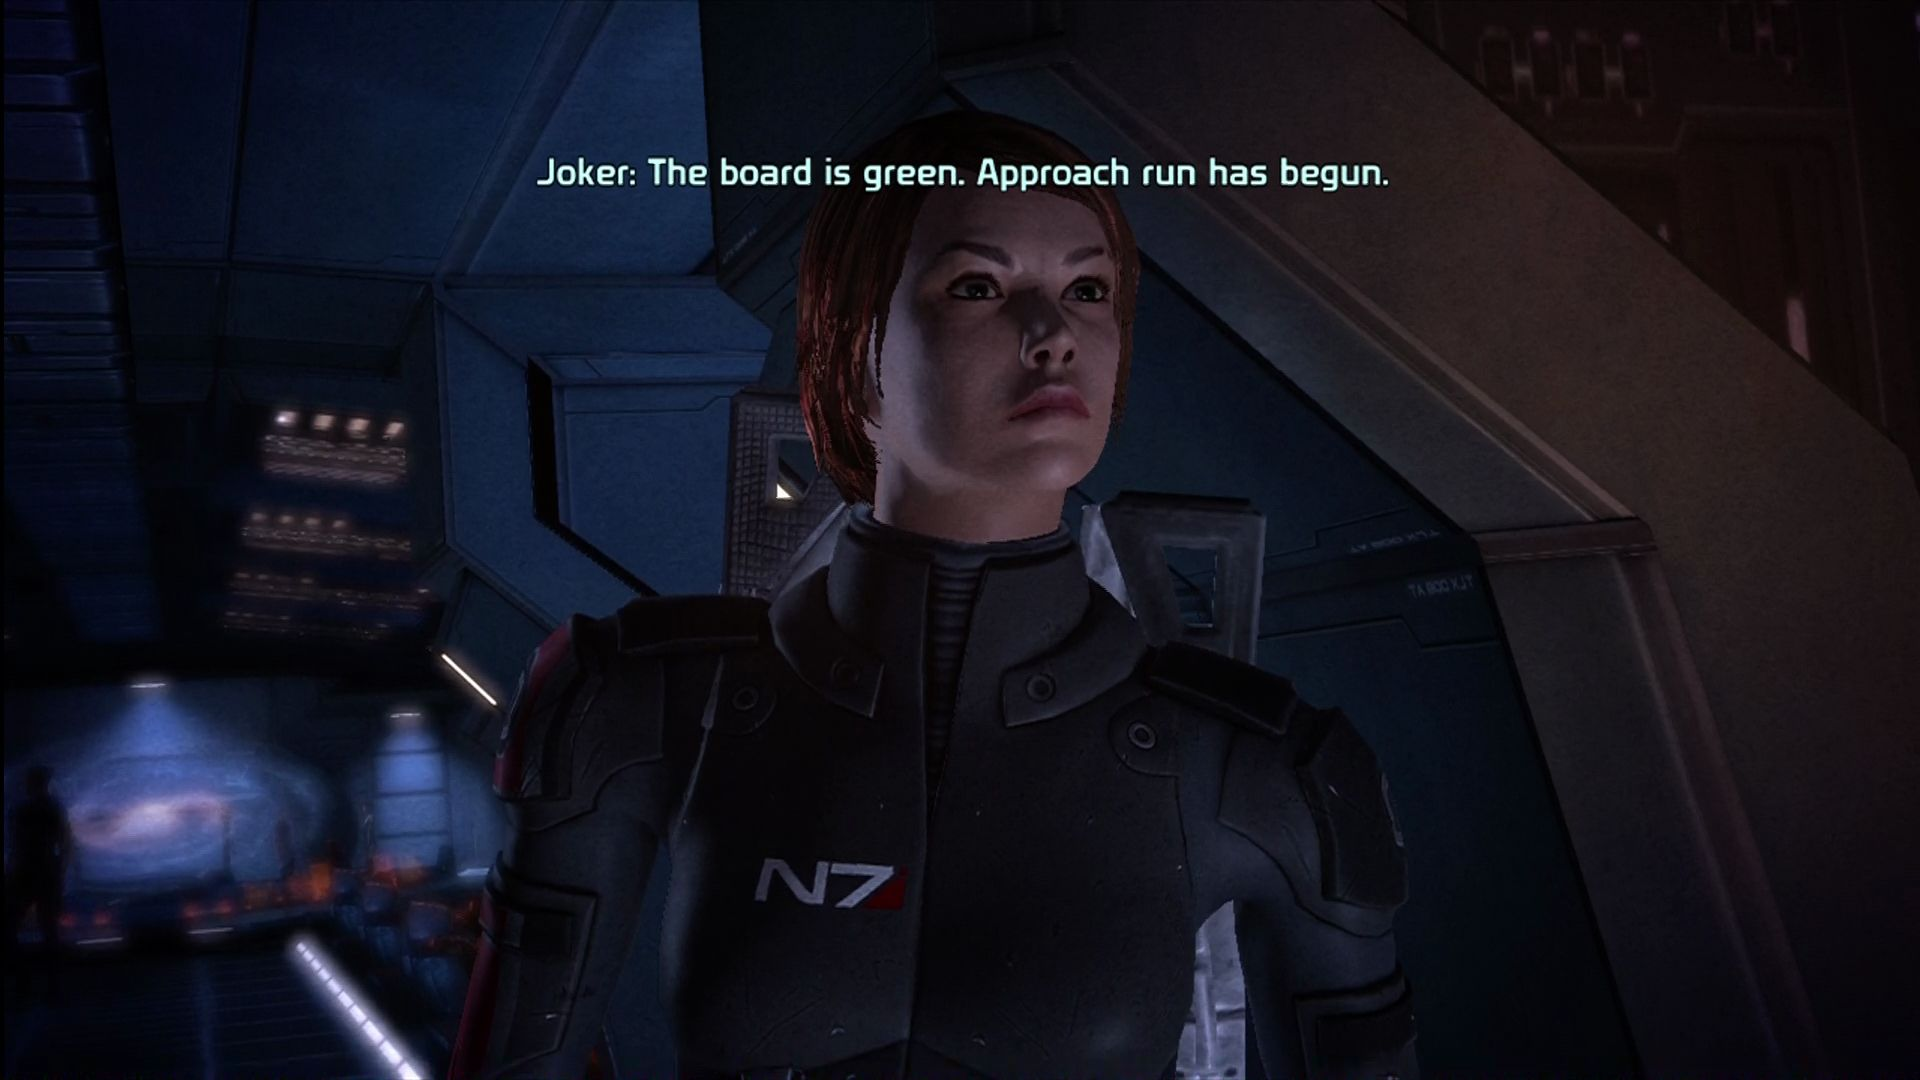 Mass Effect Xbox 360 You can customize your character. Here, female Shepard arrives on scene.